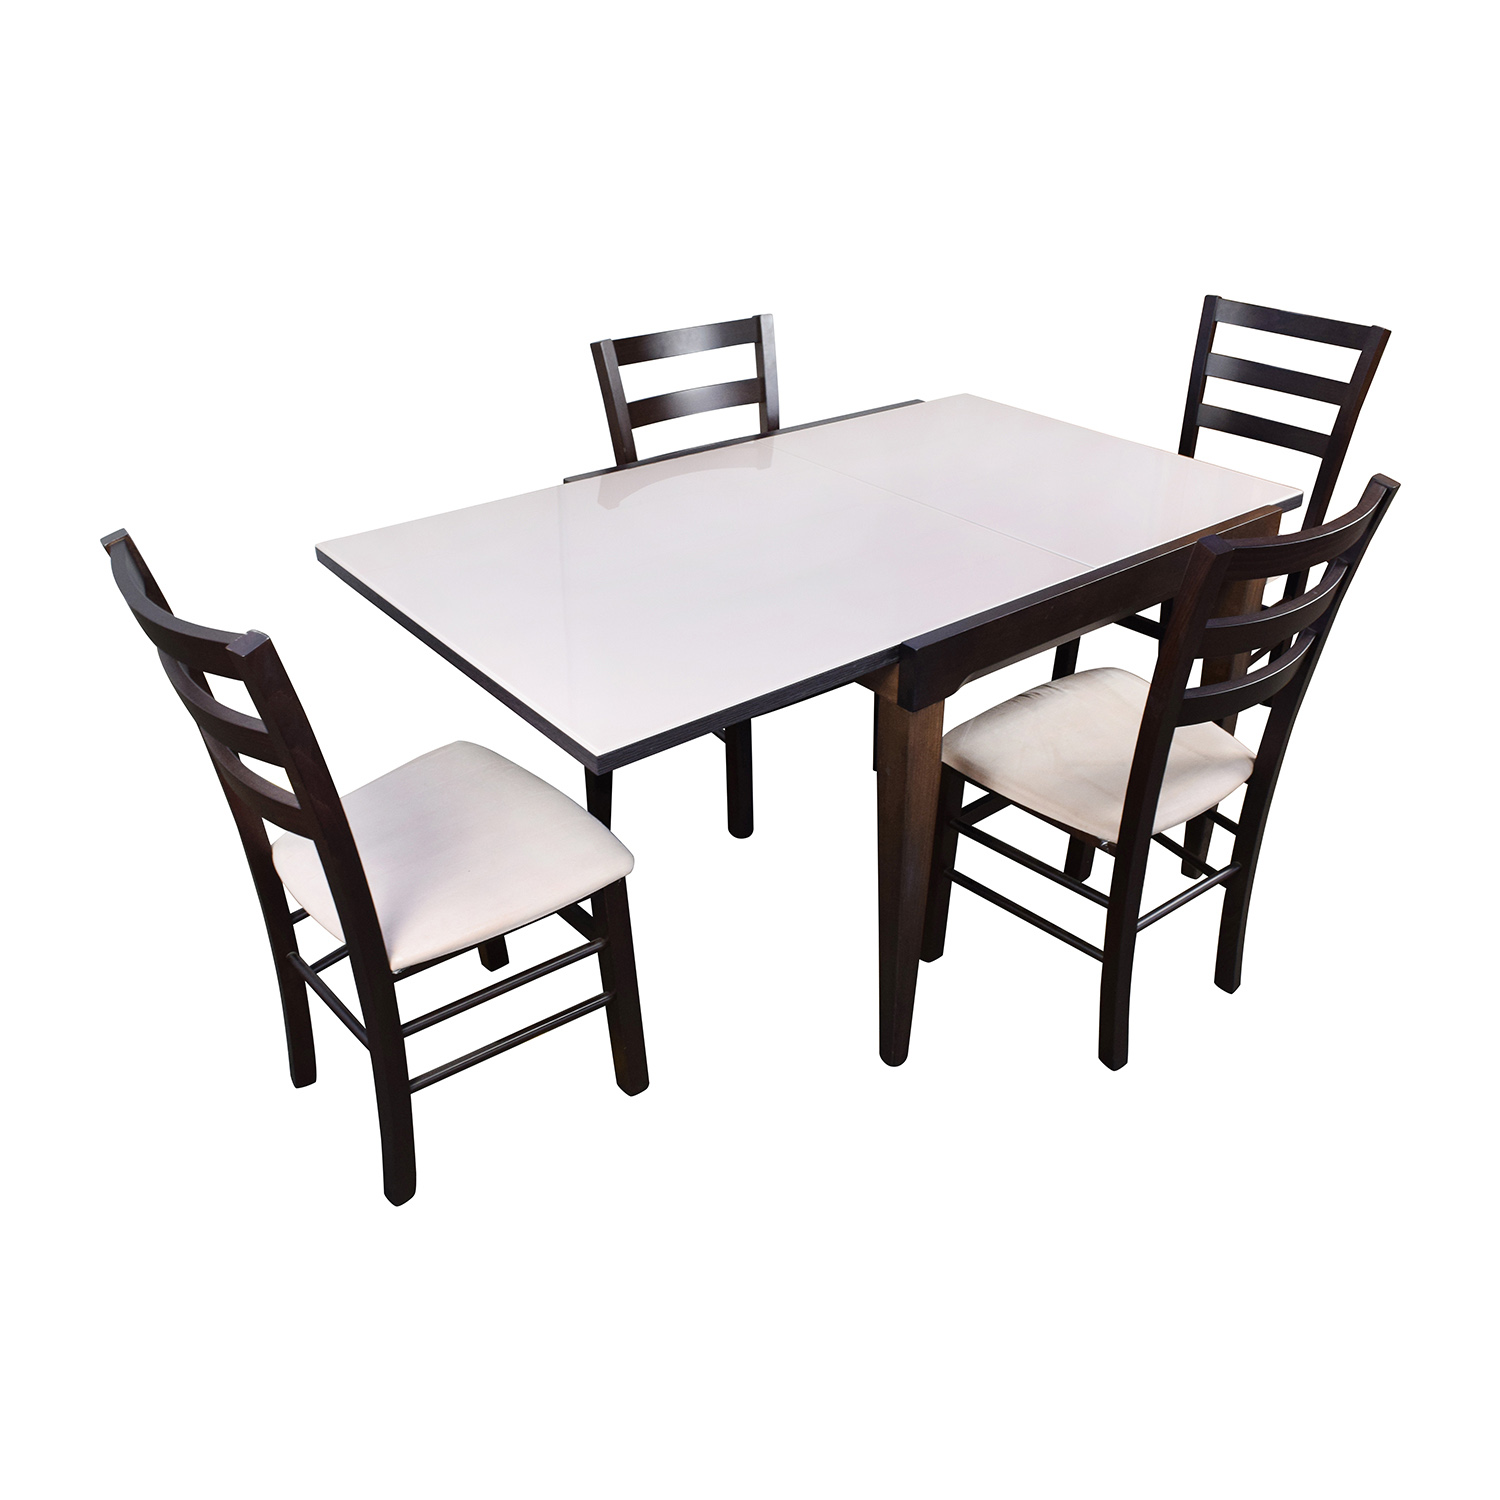 82 OFF Macys Macys Cafe Latte Five Piece Extendable  : second hand macys cafe latte five piece extendable dining set from furnishare.com size 1500 x 1500 jpeg 254kB